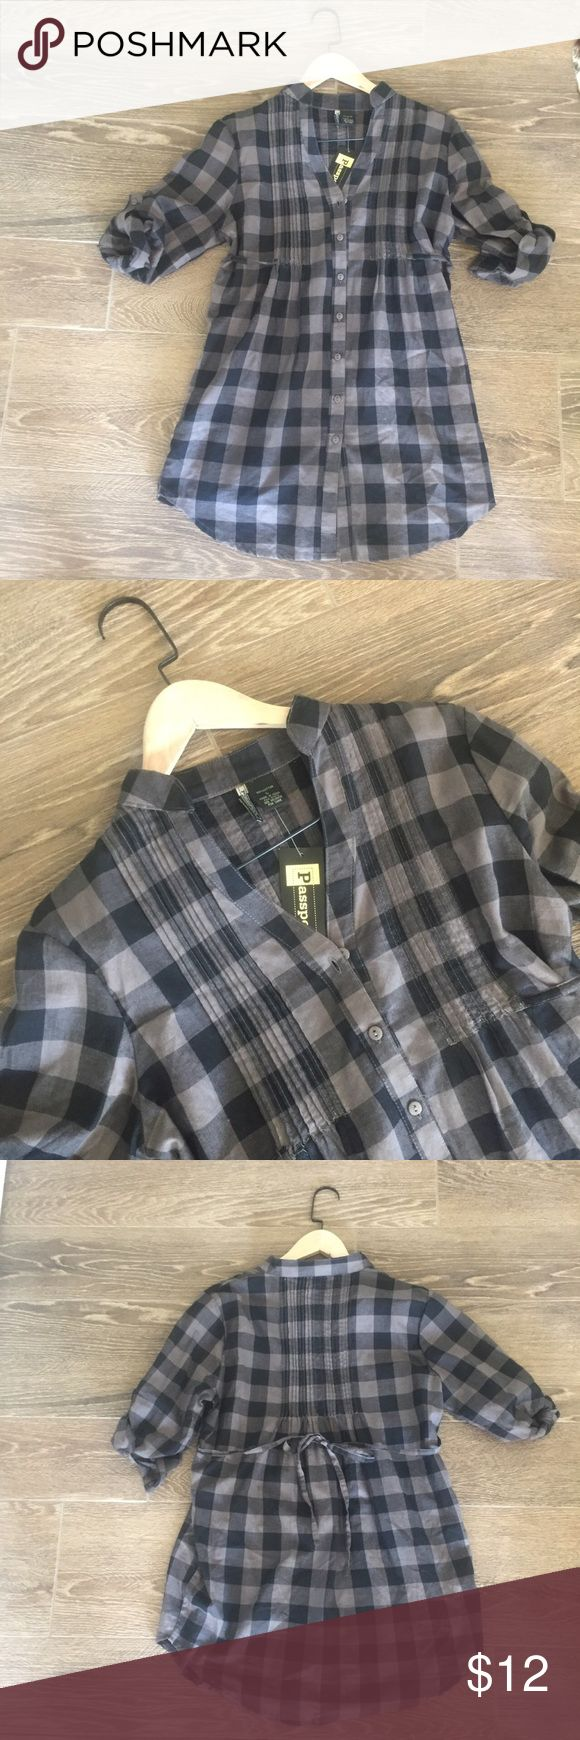 """NWT Passport Brown Plaid Shirt Dress sz Large NWT Passport button down shirt dress size Large. Brown and black plaid. Collarless with a v front. Attached belt that ties to the back. Button back sleeves. Would be Cute with leggings or boots or heels or flats. 31"""" shoulder to bottom hem #dress #plaid #shirtdress #womens #juniors Passport Dresses Midi"""